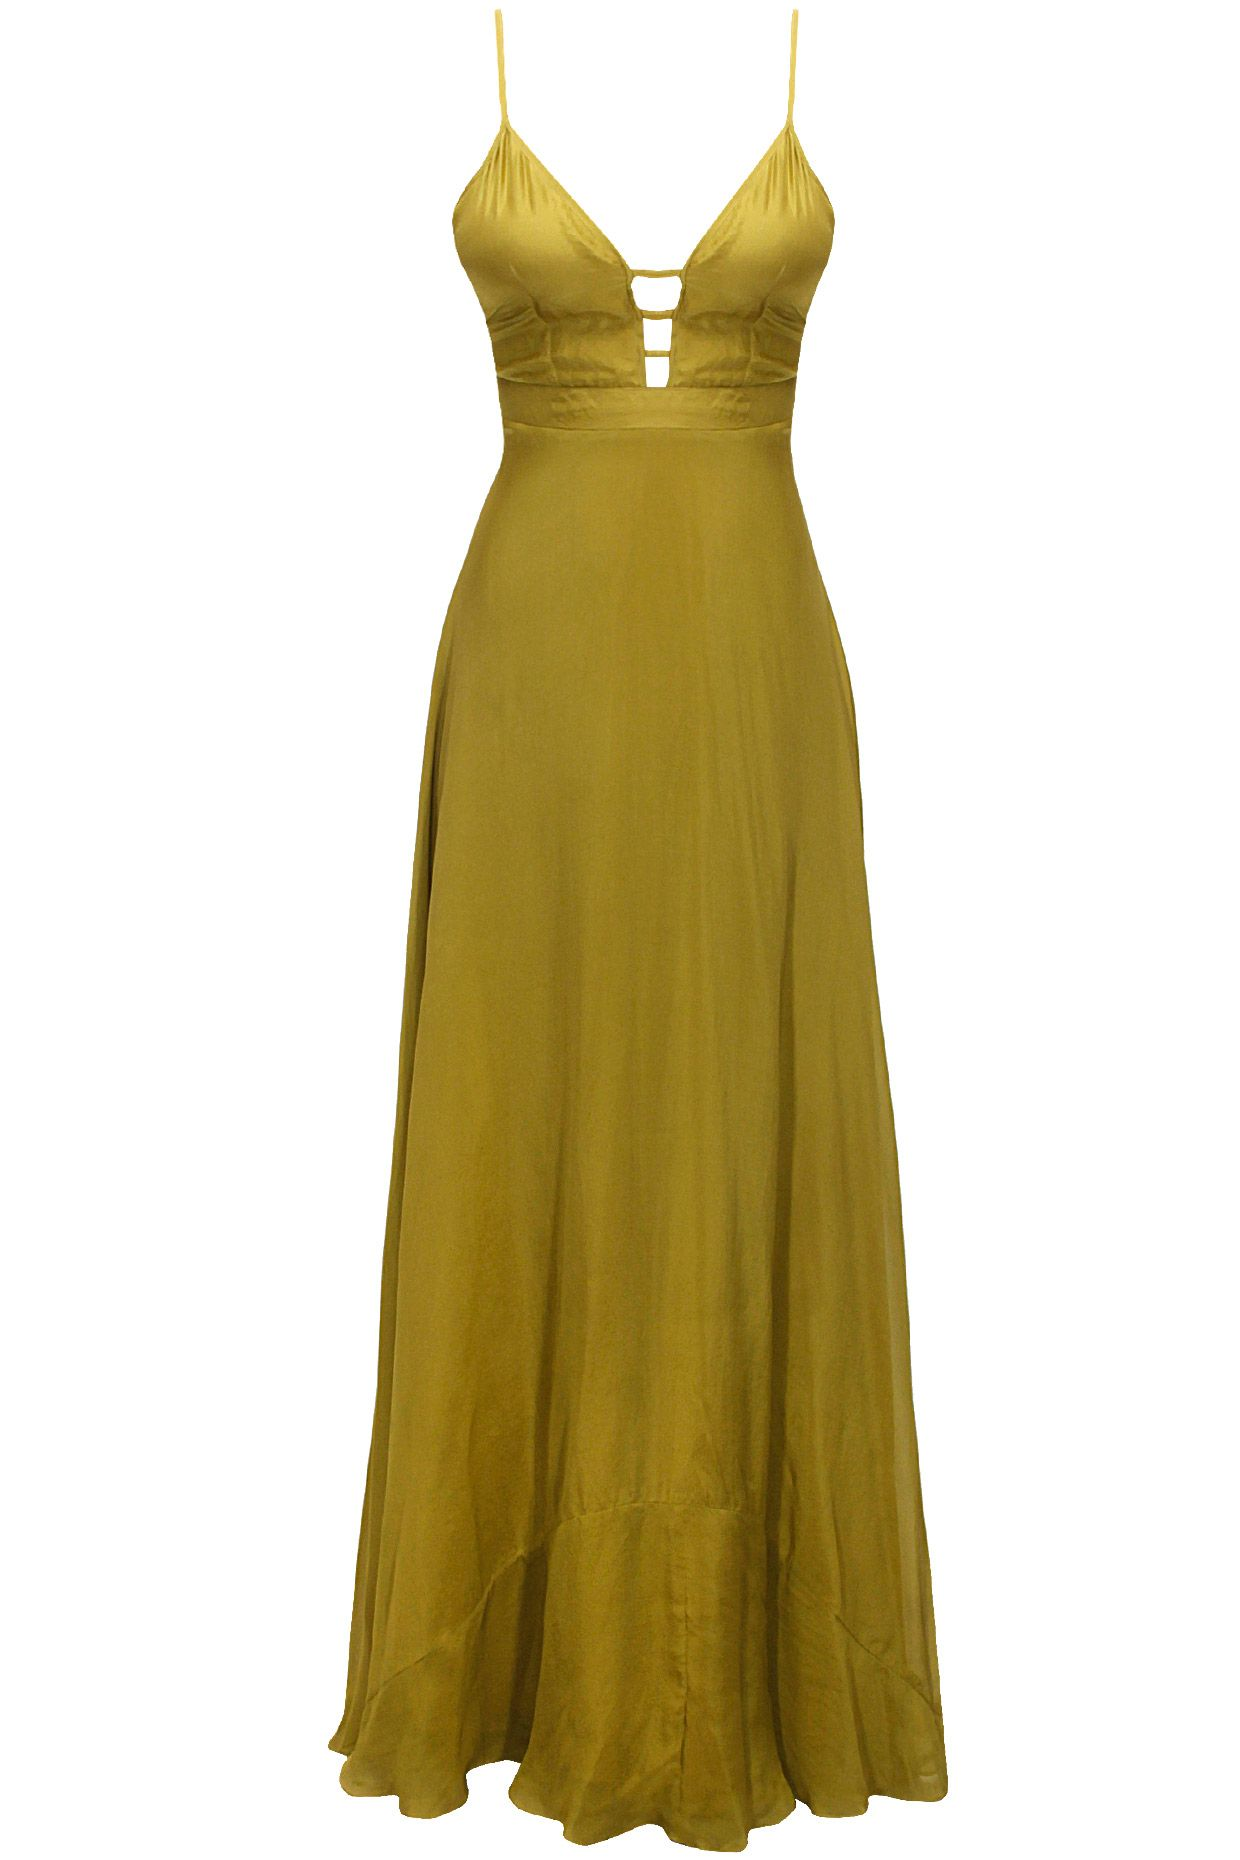 Olive green cut out long dress available only at Pernia's Pop-Up Shop.